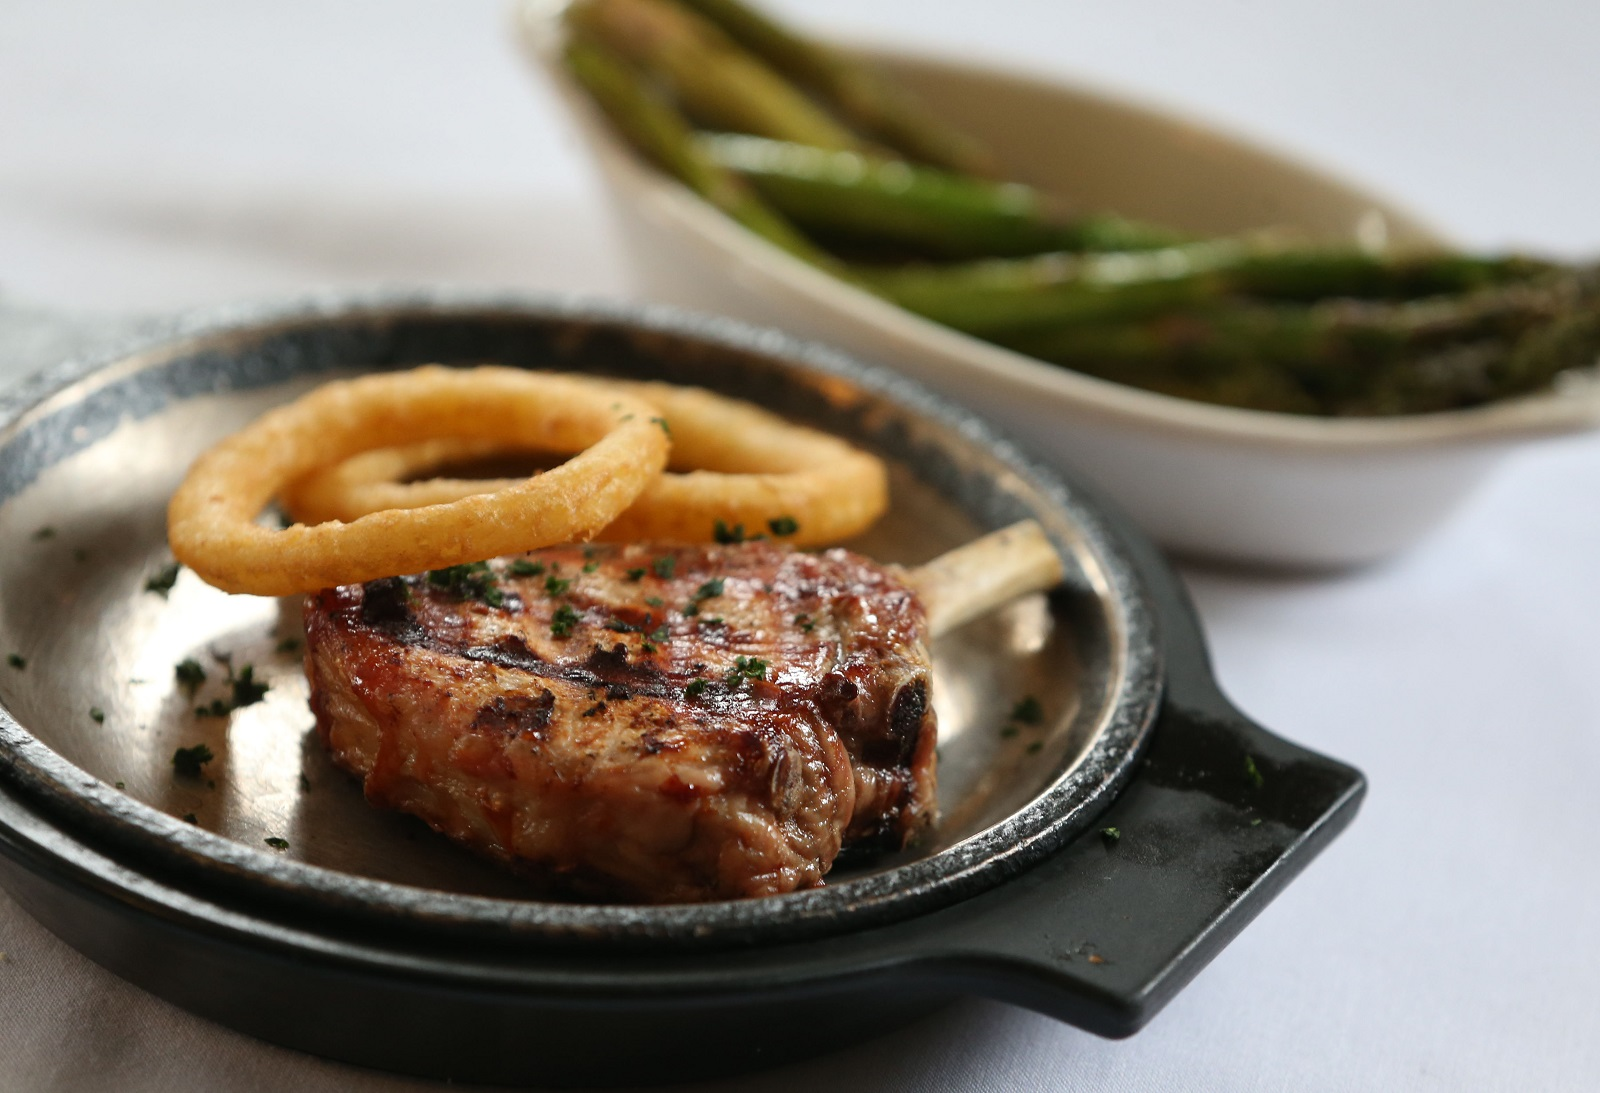 Their roast beef on kummelweck is made with certified angus beef. (Sharon Cantillon/Buffalo News)